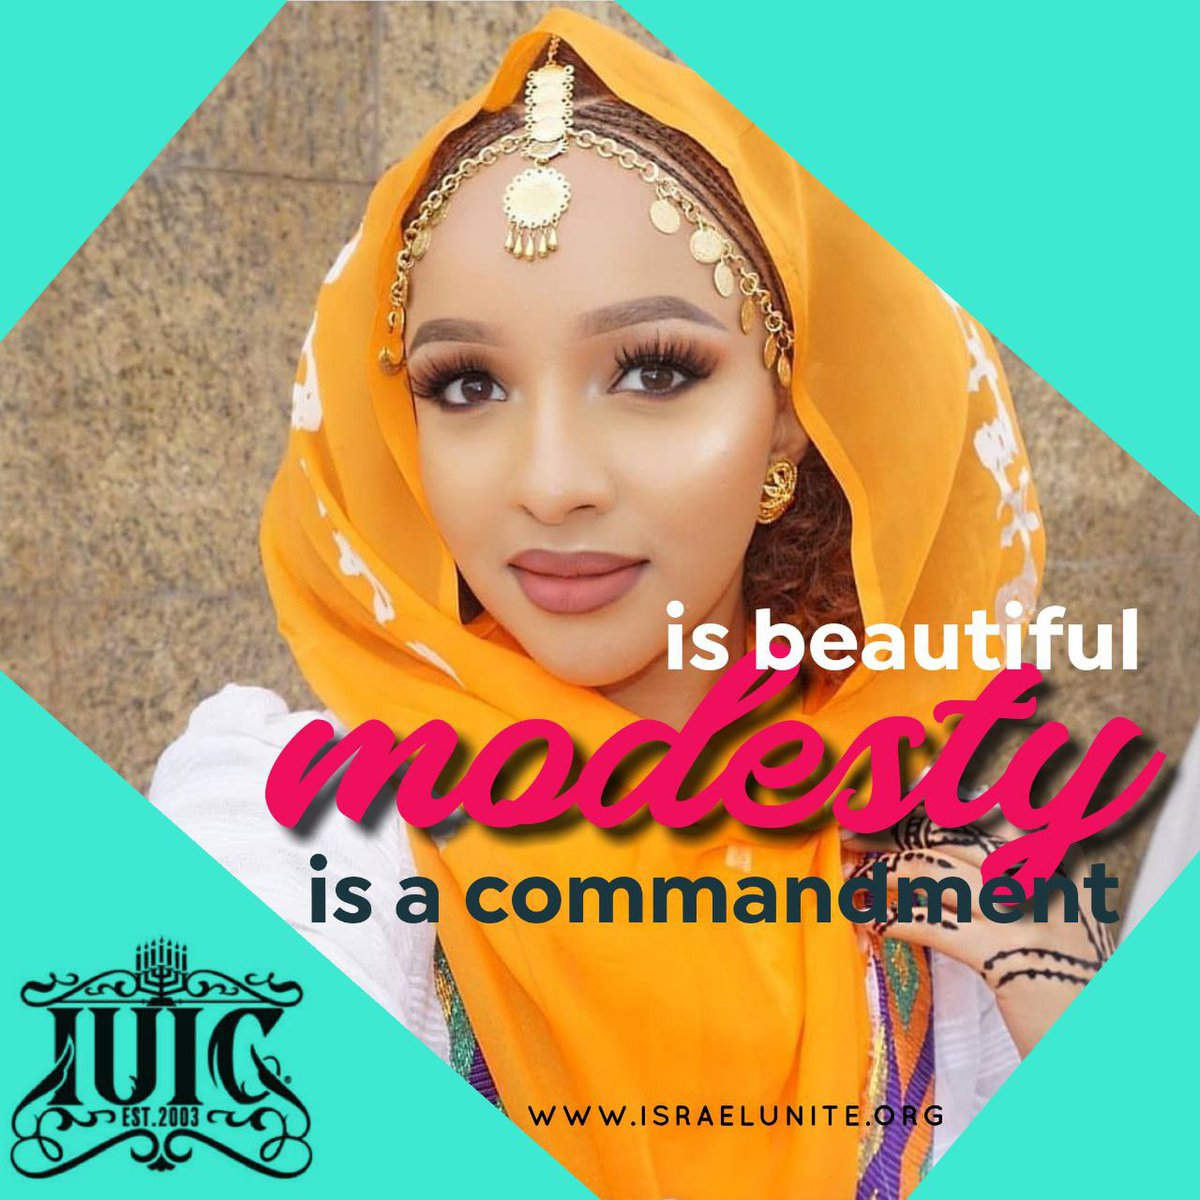 Let your modesty shine!!!   1 Timothy 2:9 [9]In like manner also, that women adorn themselves in modest apparel, with shamefacedness and sobriety; not with broided hair, or gold, or pearls, or costly array;  #Beautiful #Modesty #ModestApparel #Shamefaced #KeeptheCommandmentspic.twitter.com/i4KAmKxUIw